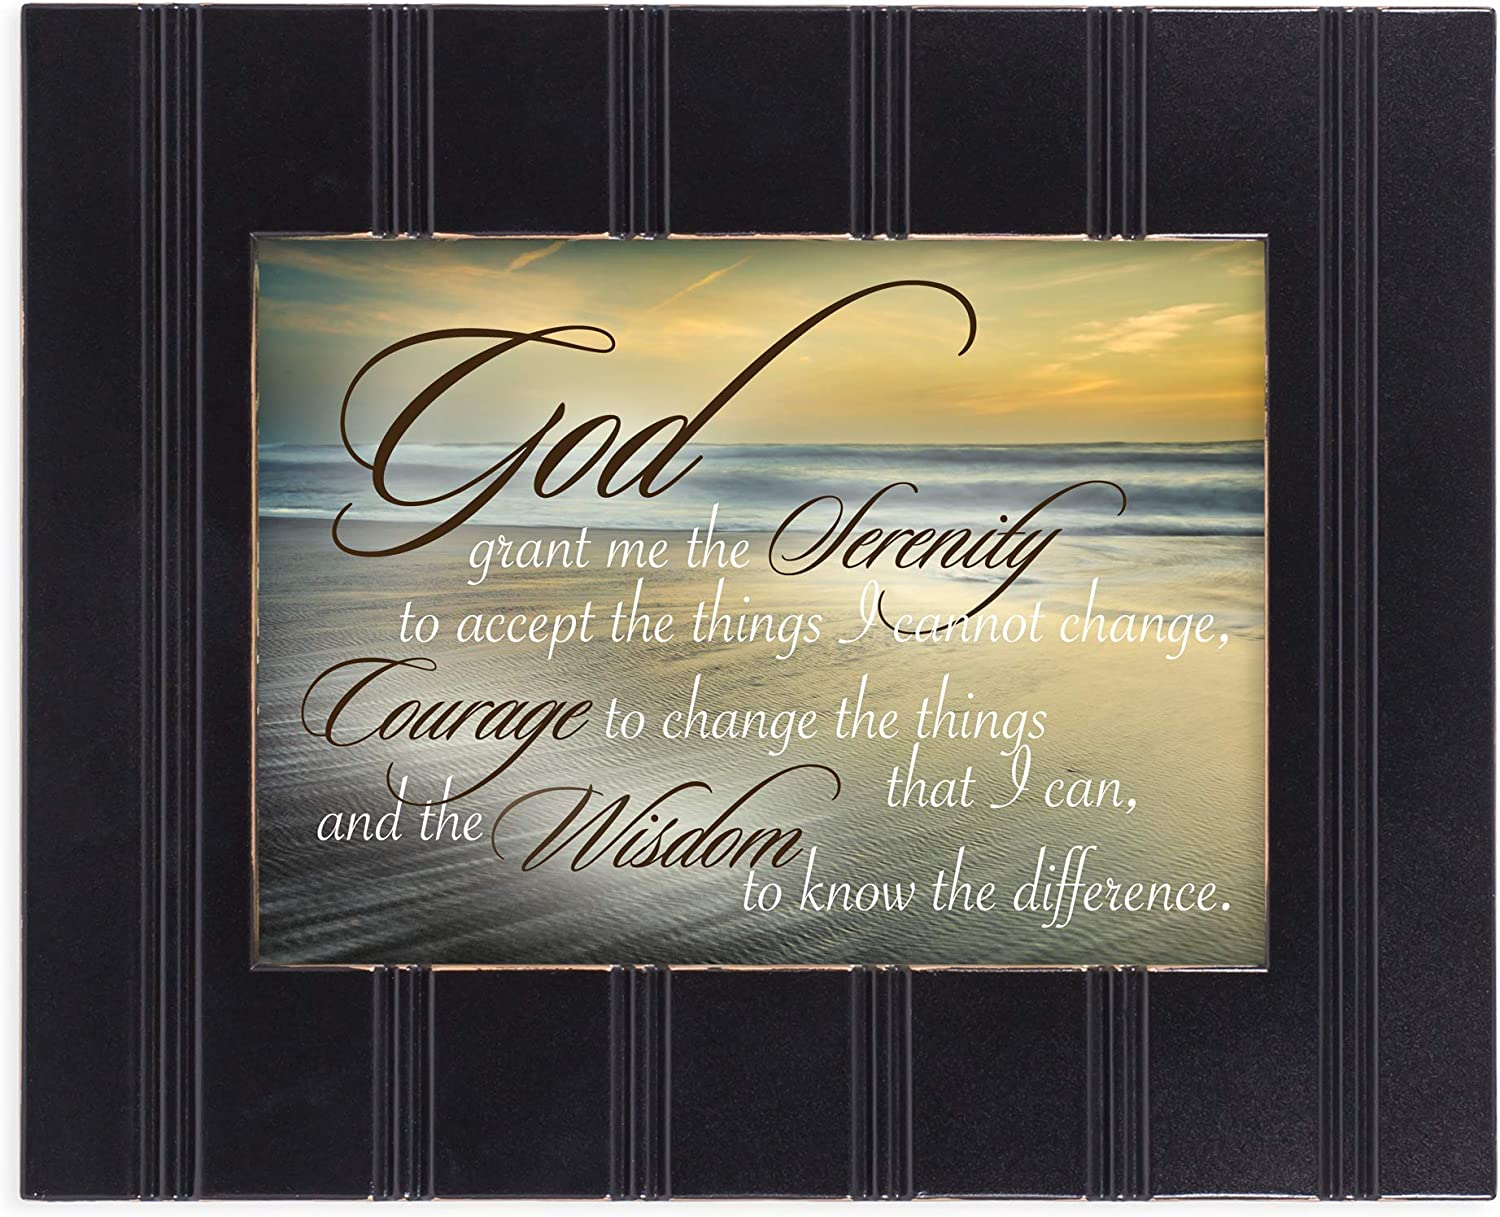 Cottage Garden Serenity Prayer Ocean Waves 8x10 Black Framed Art Wall Plaque Sign